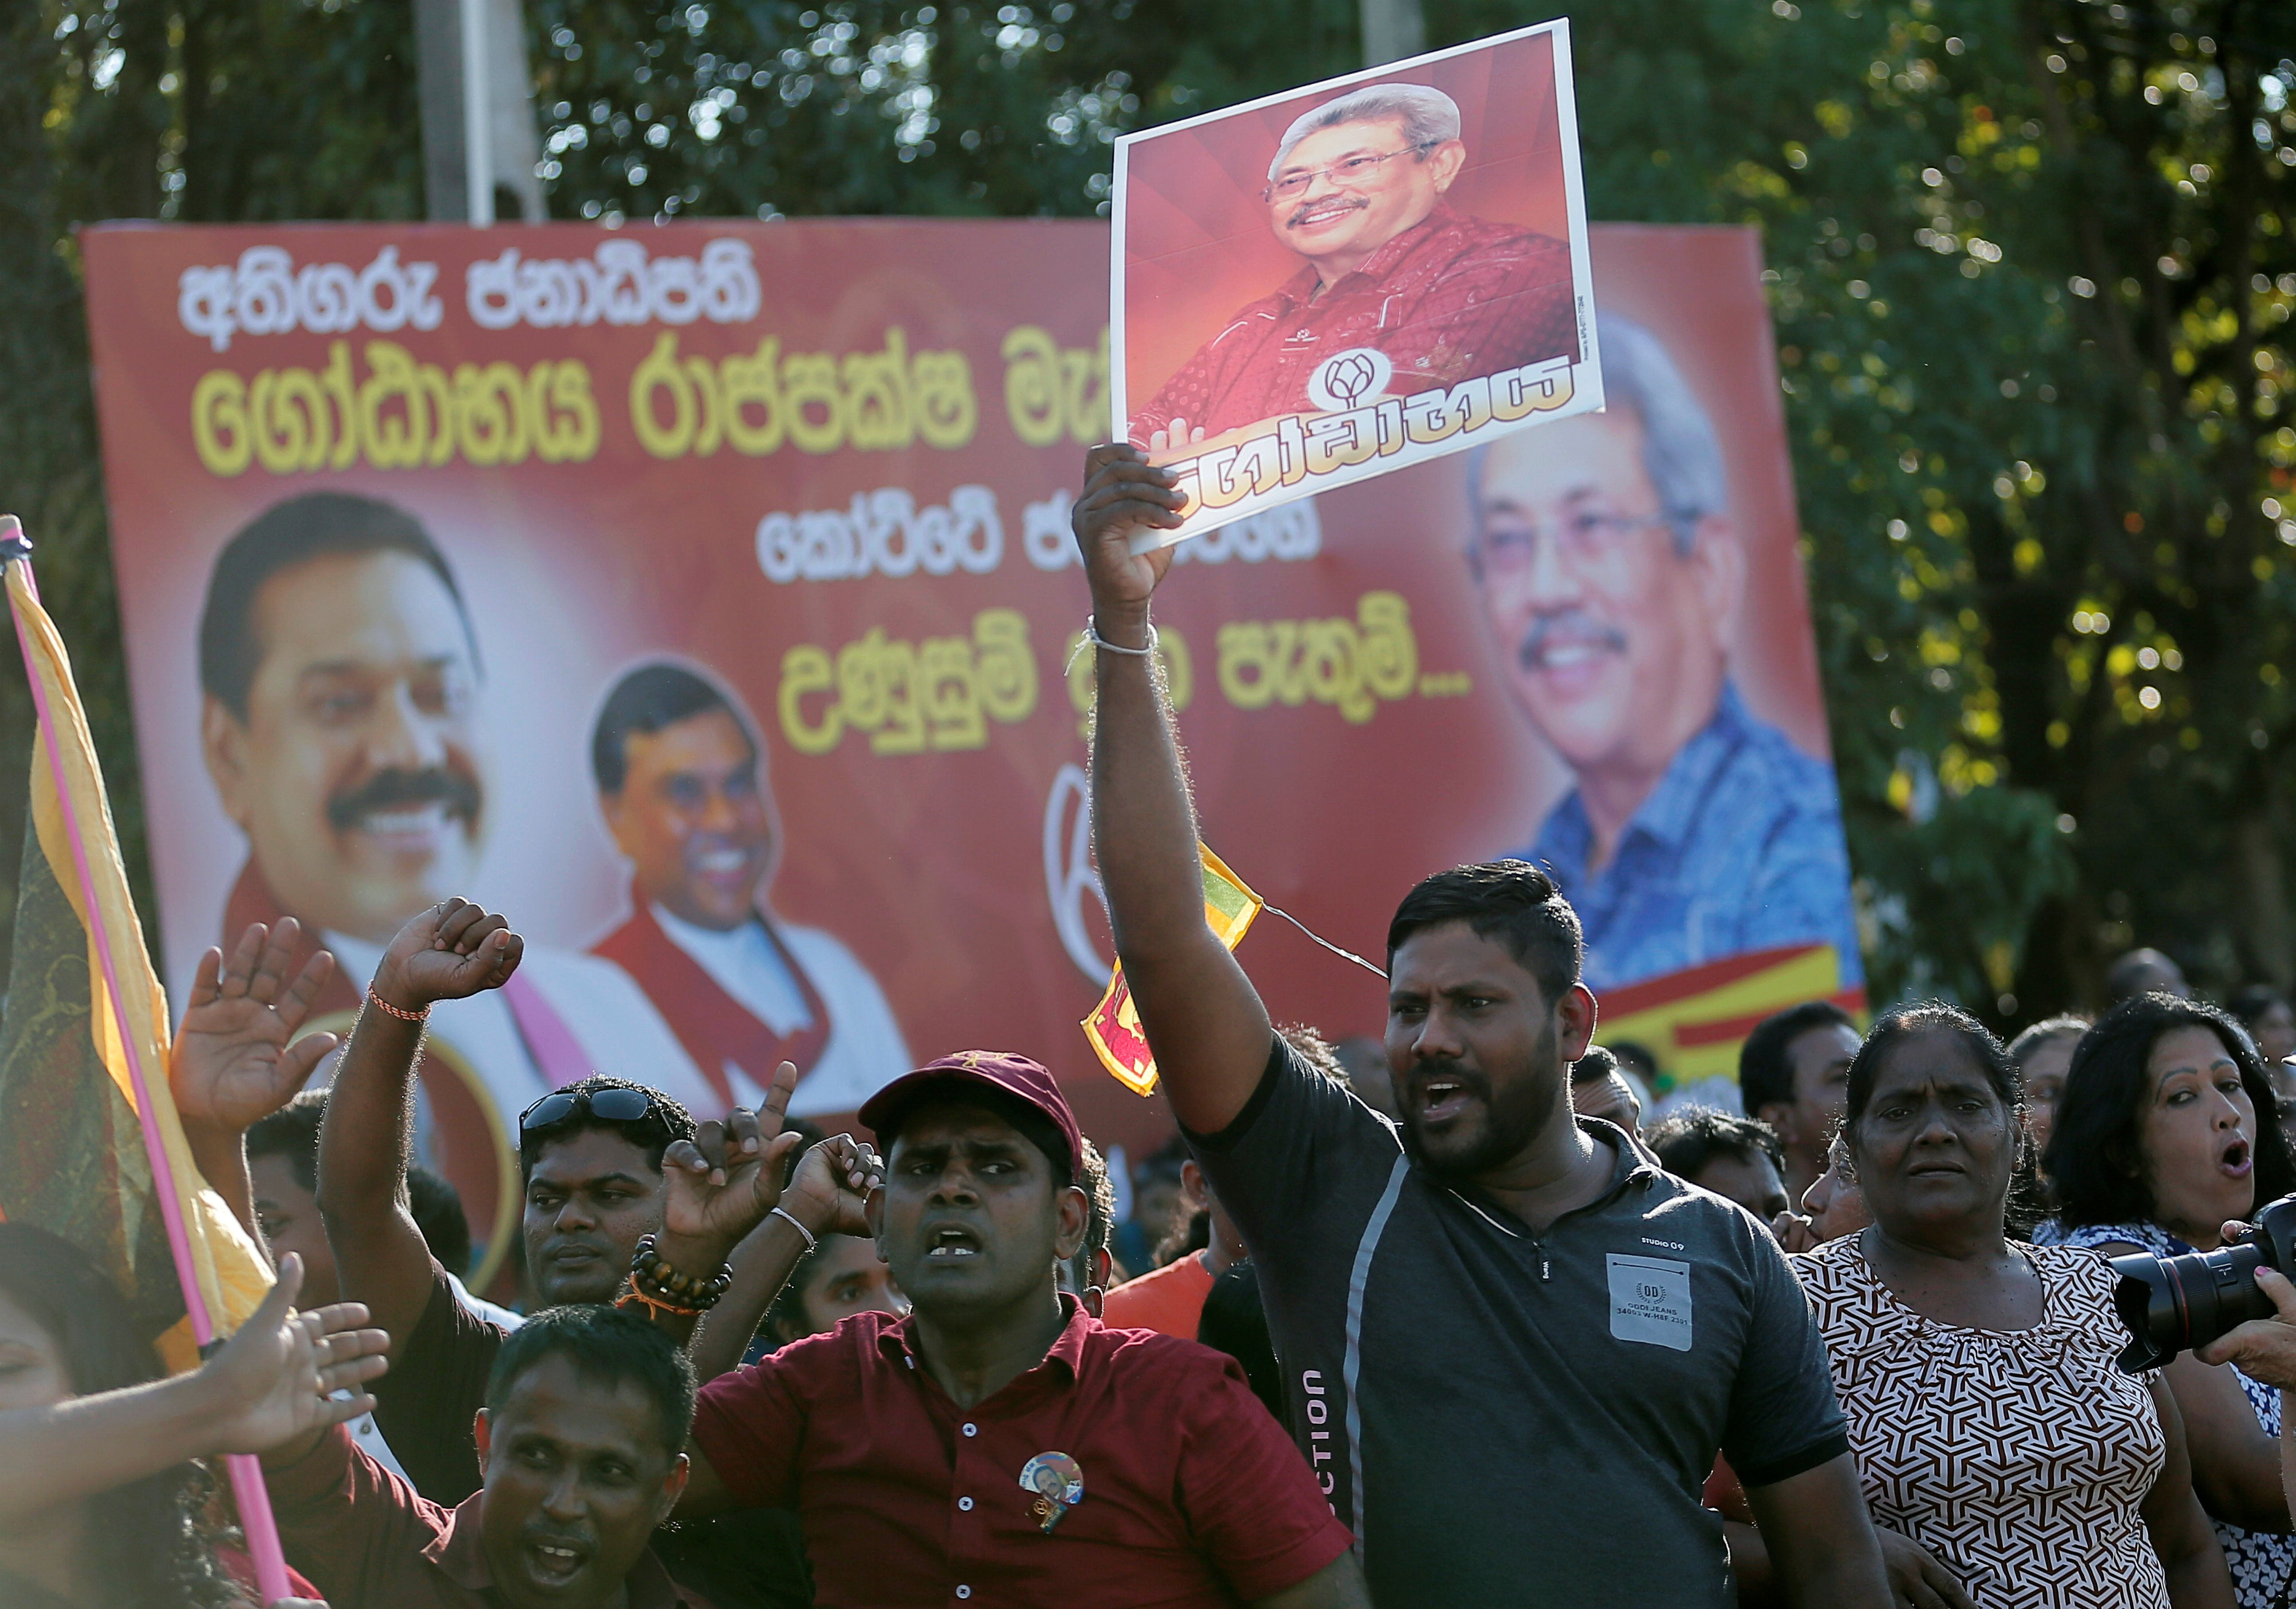 Sri Lanka is voting, China is smiling